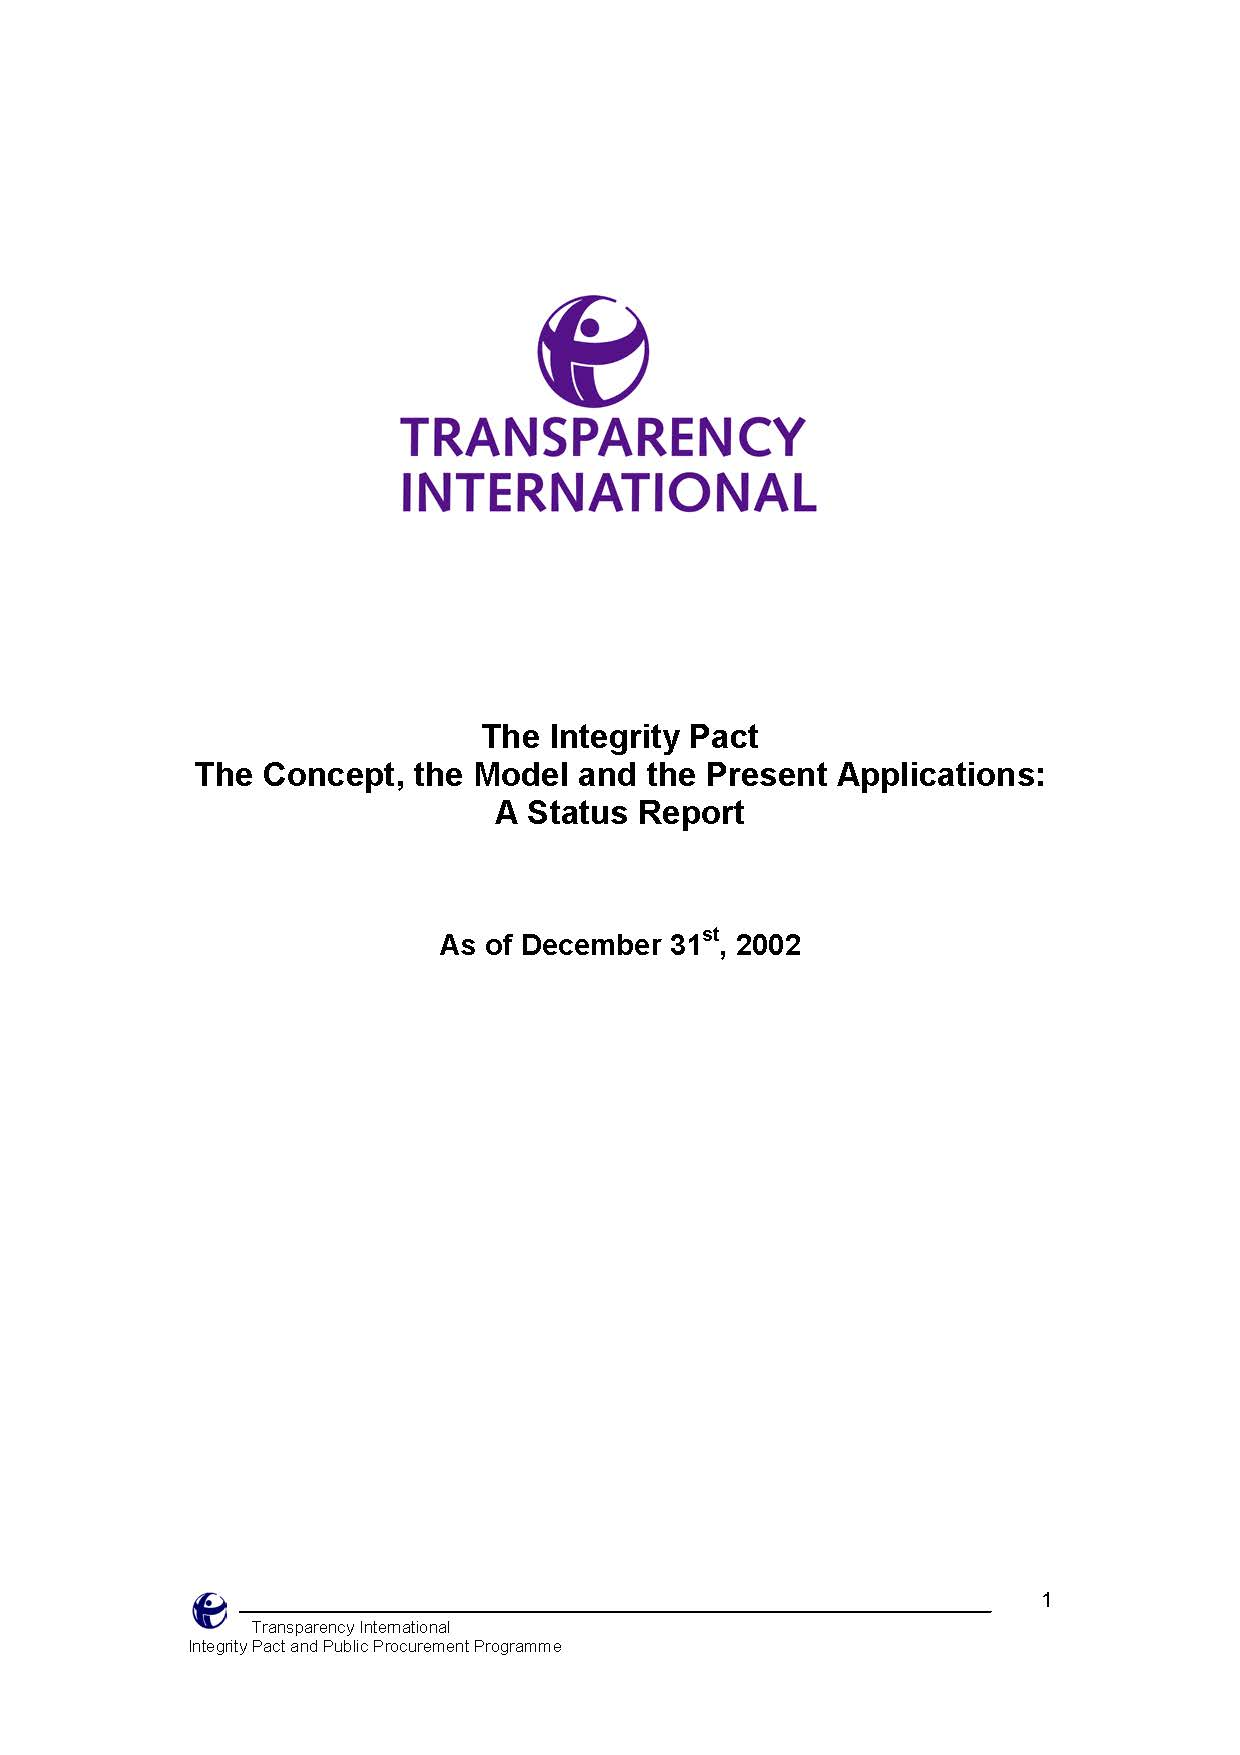 Pages from TI_The Integrity Pact A Status Report_2002.jpg